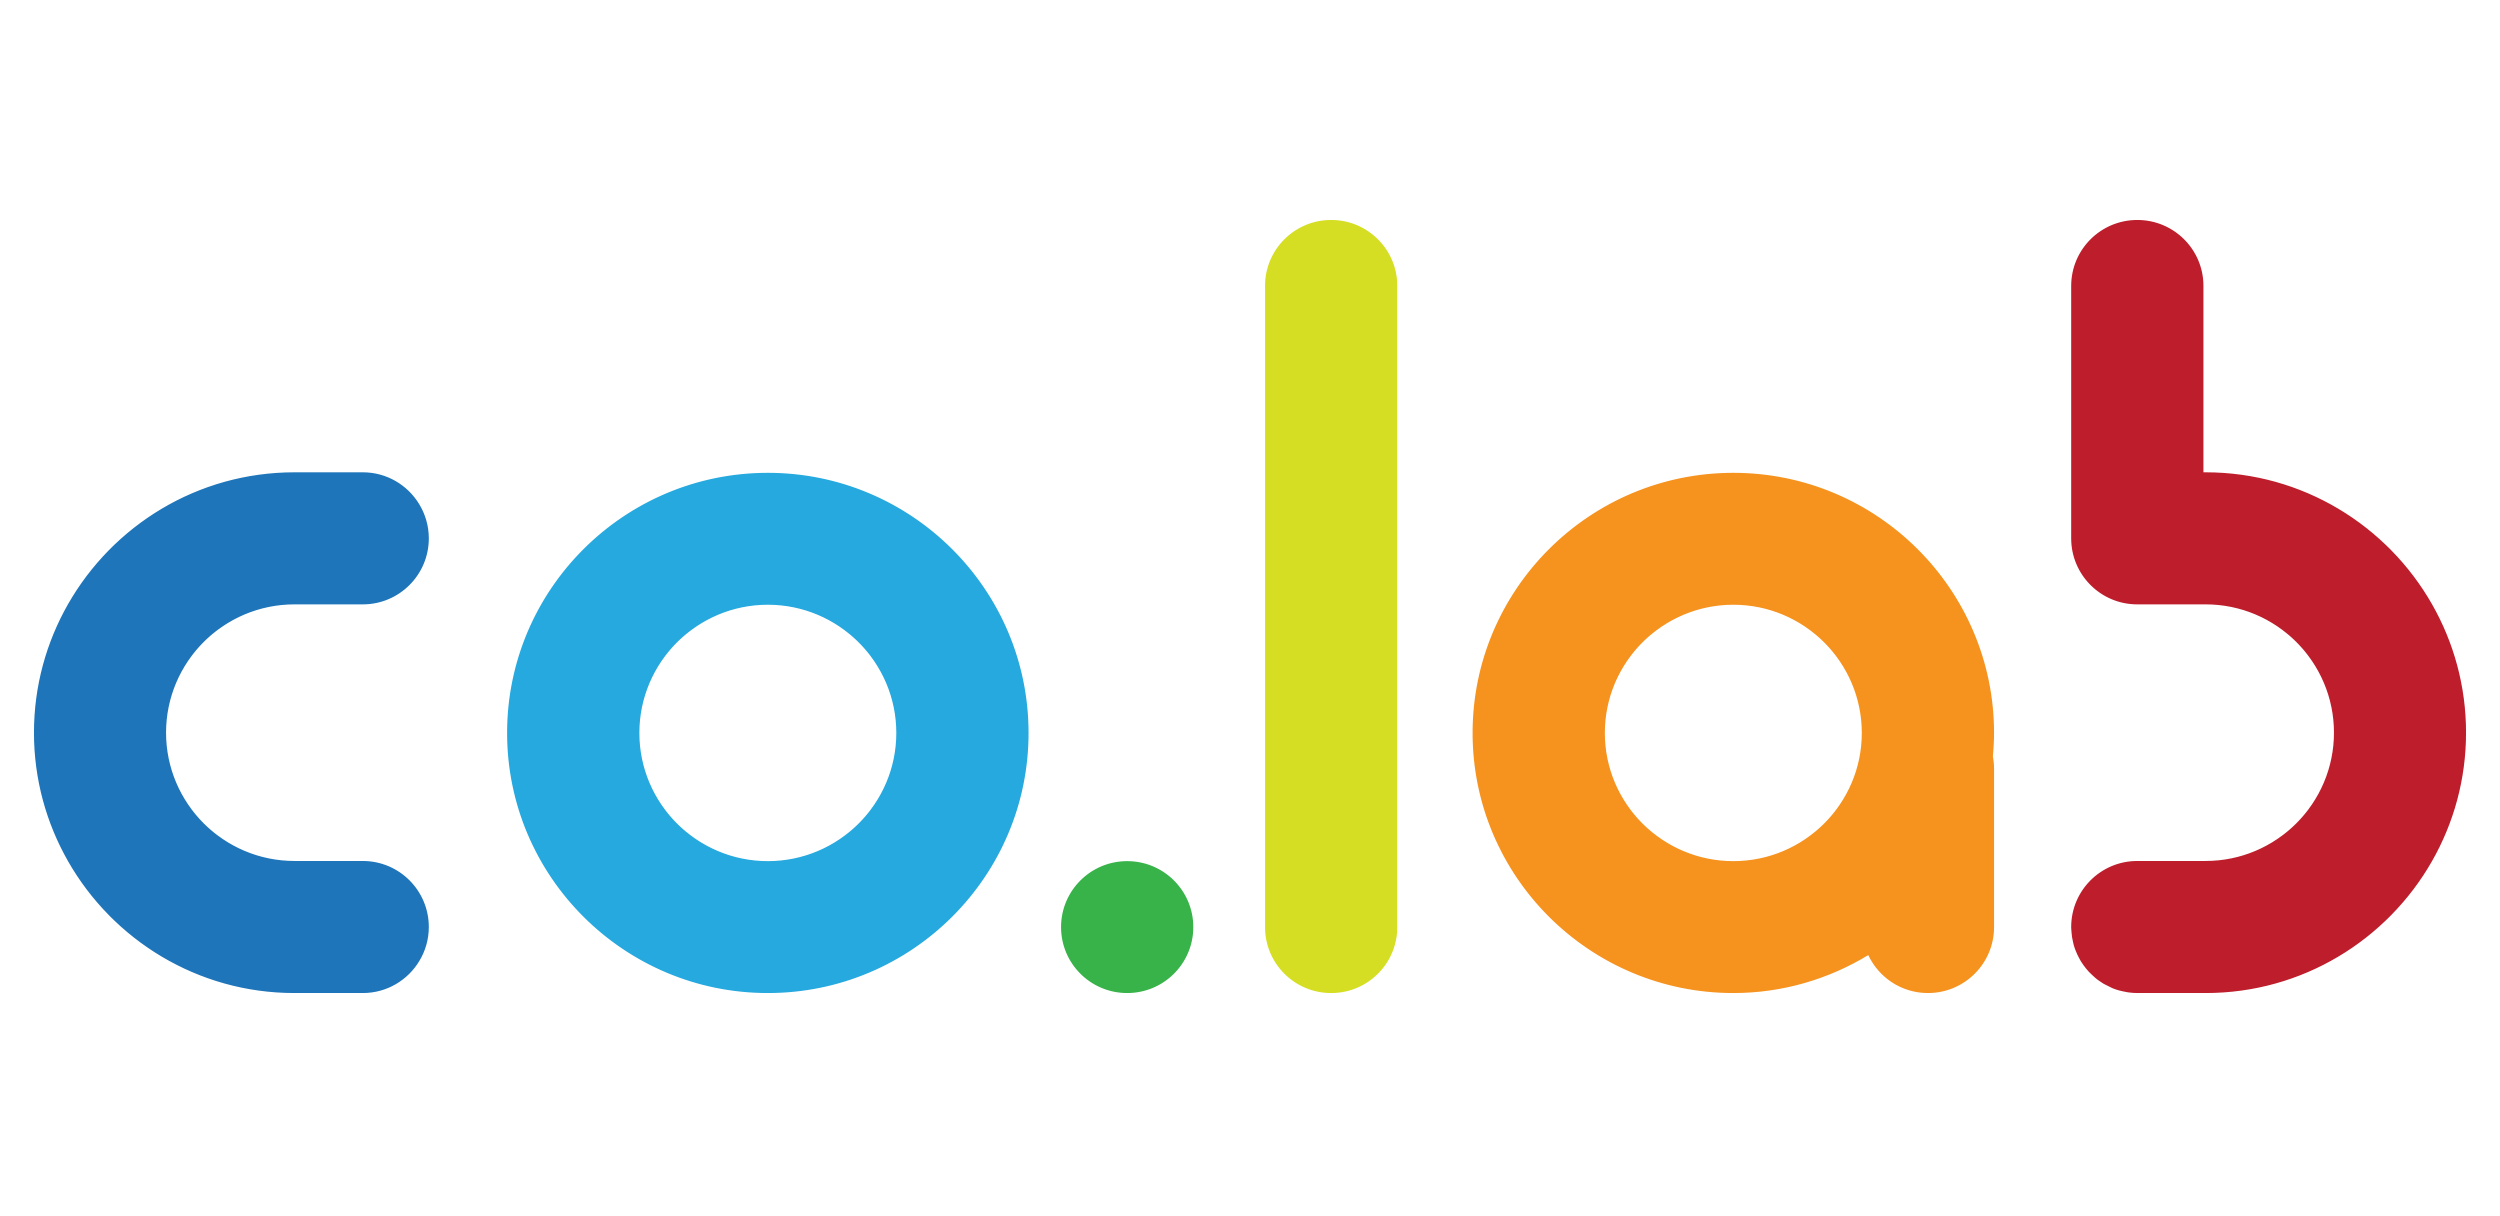 2013-10-15-colablogo1.png